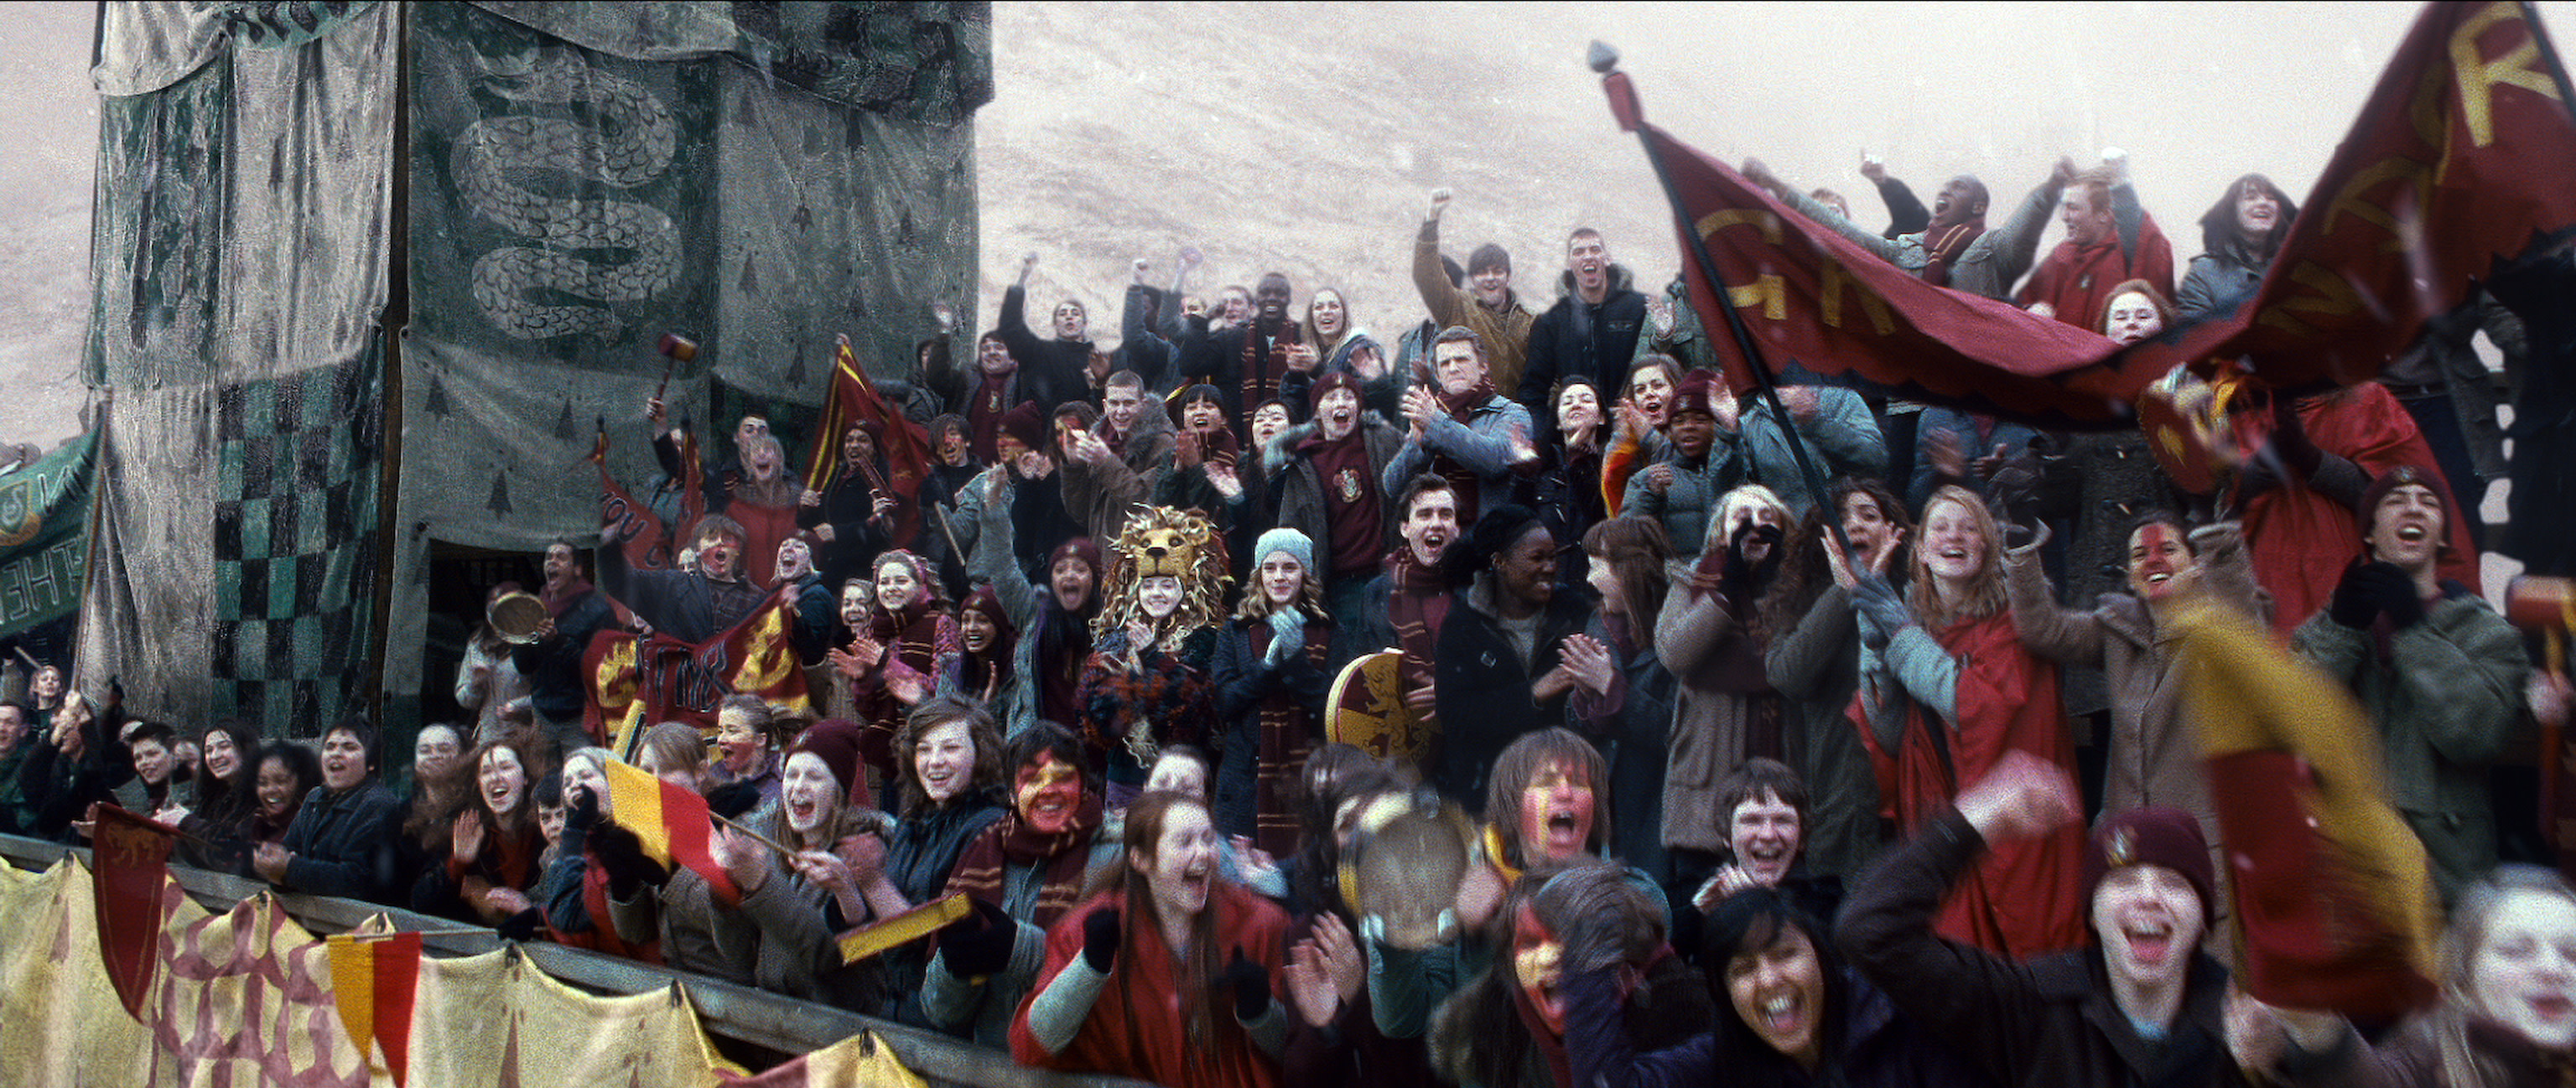 Quidditch crowd stands image